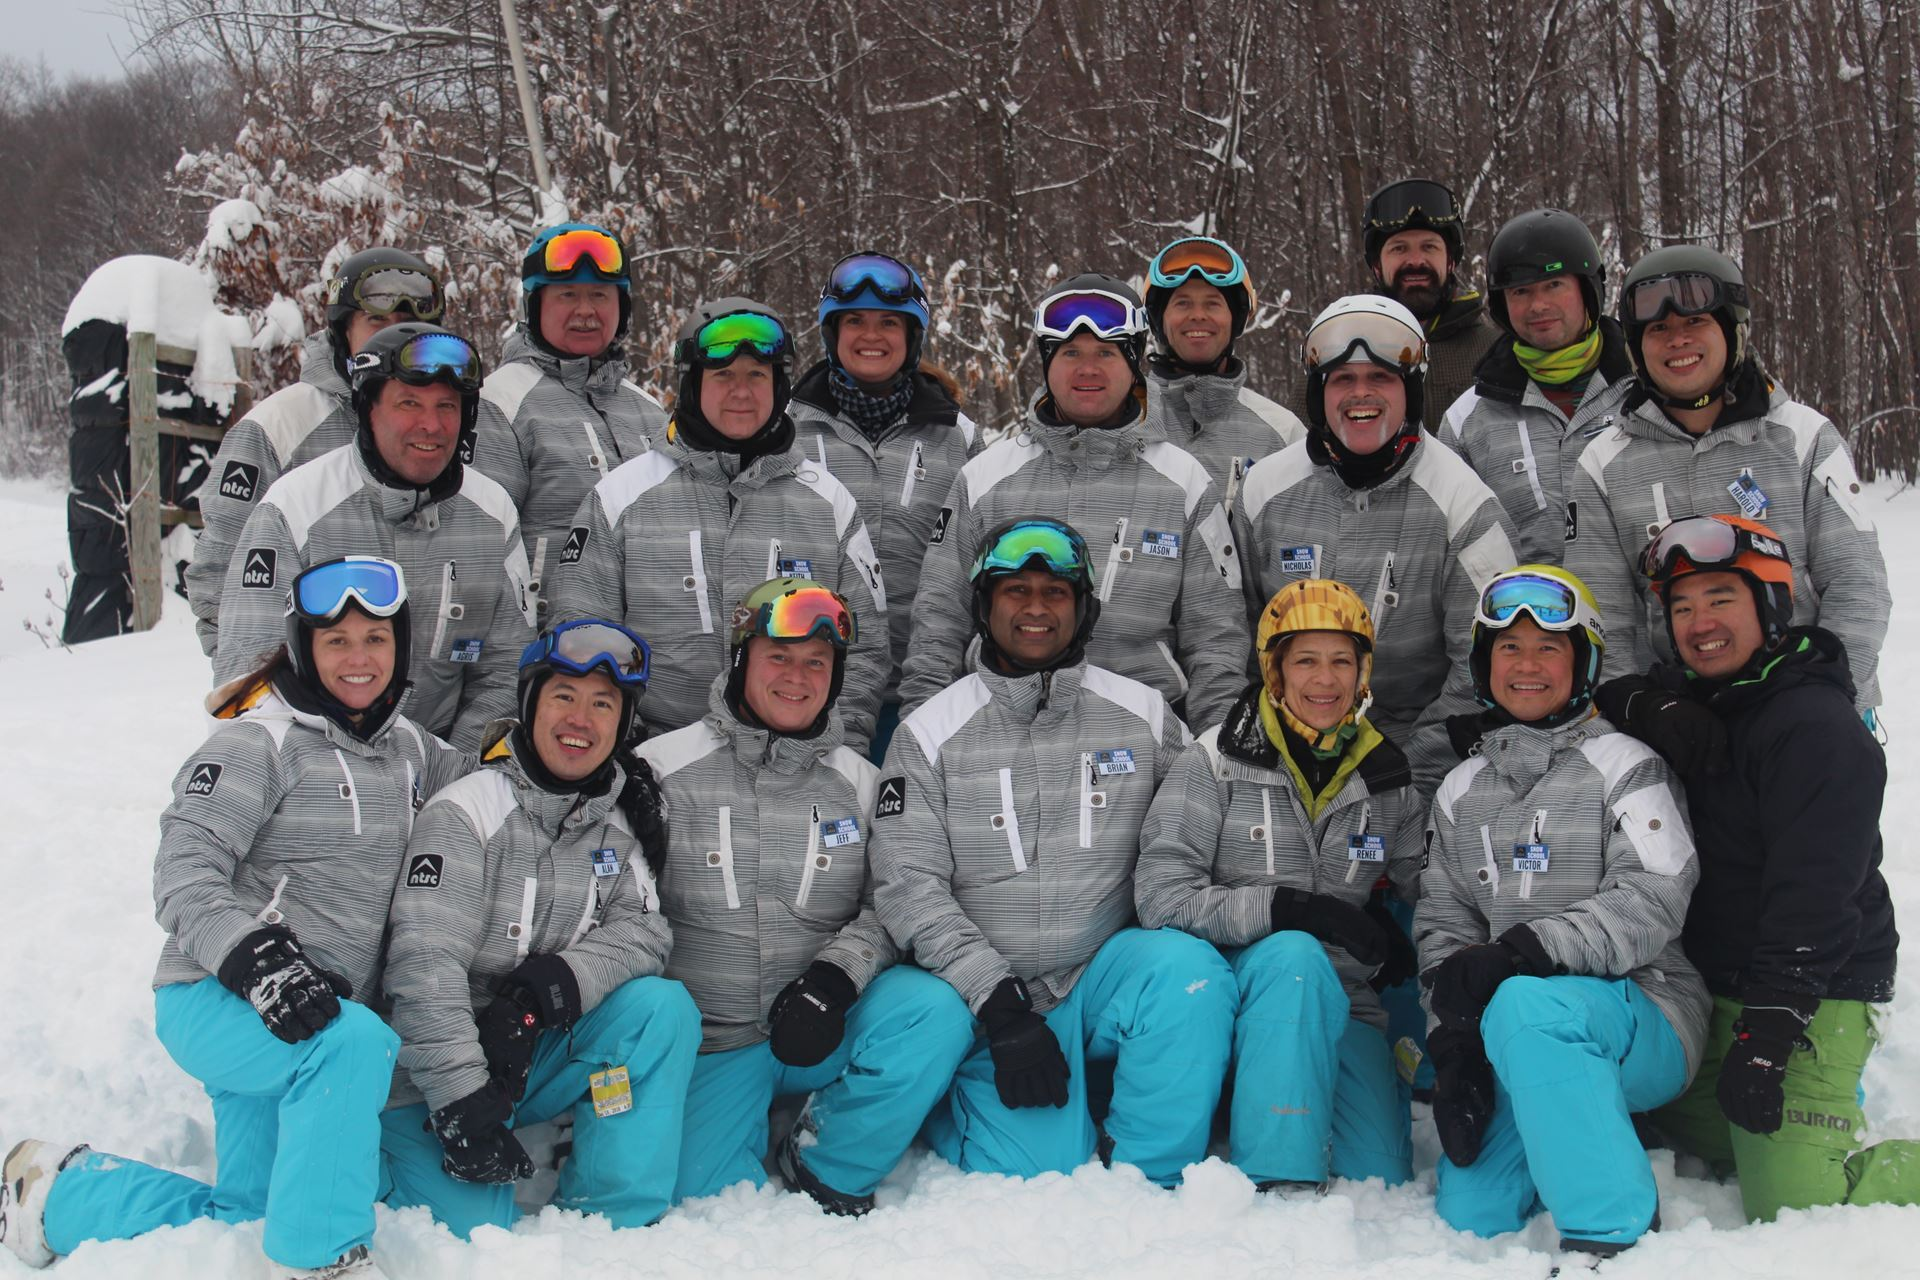 [Group Photo of Snowboard instructors]